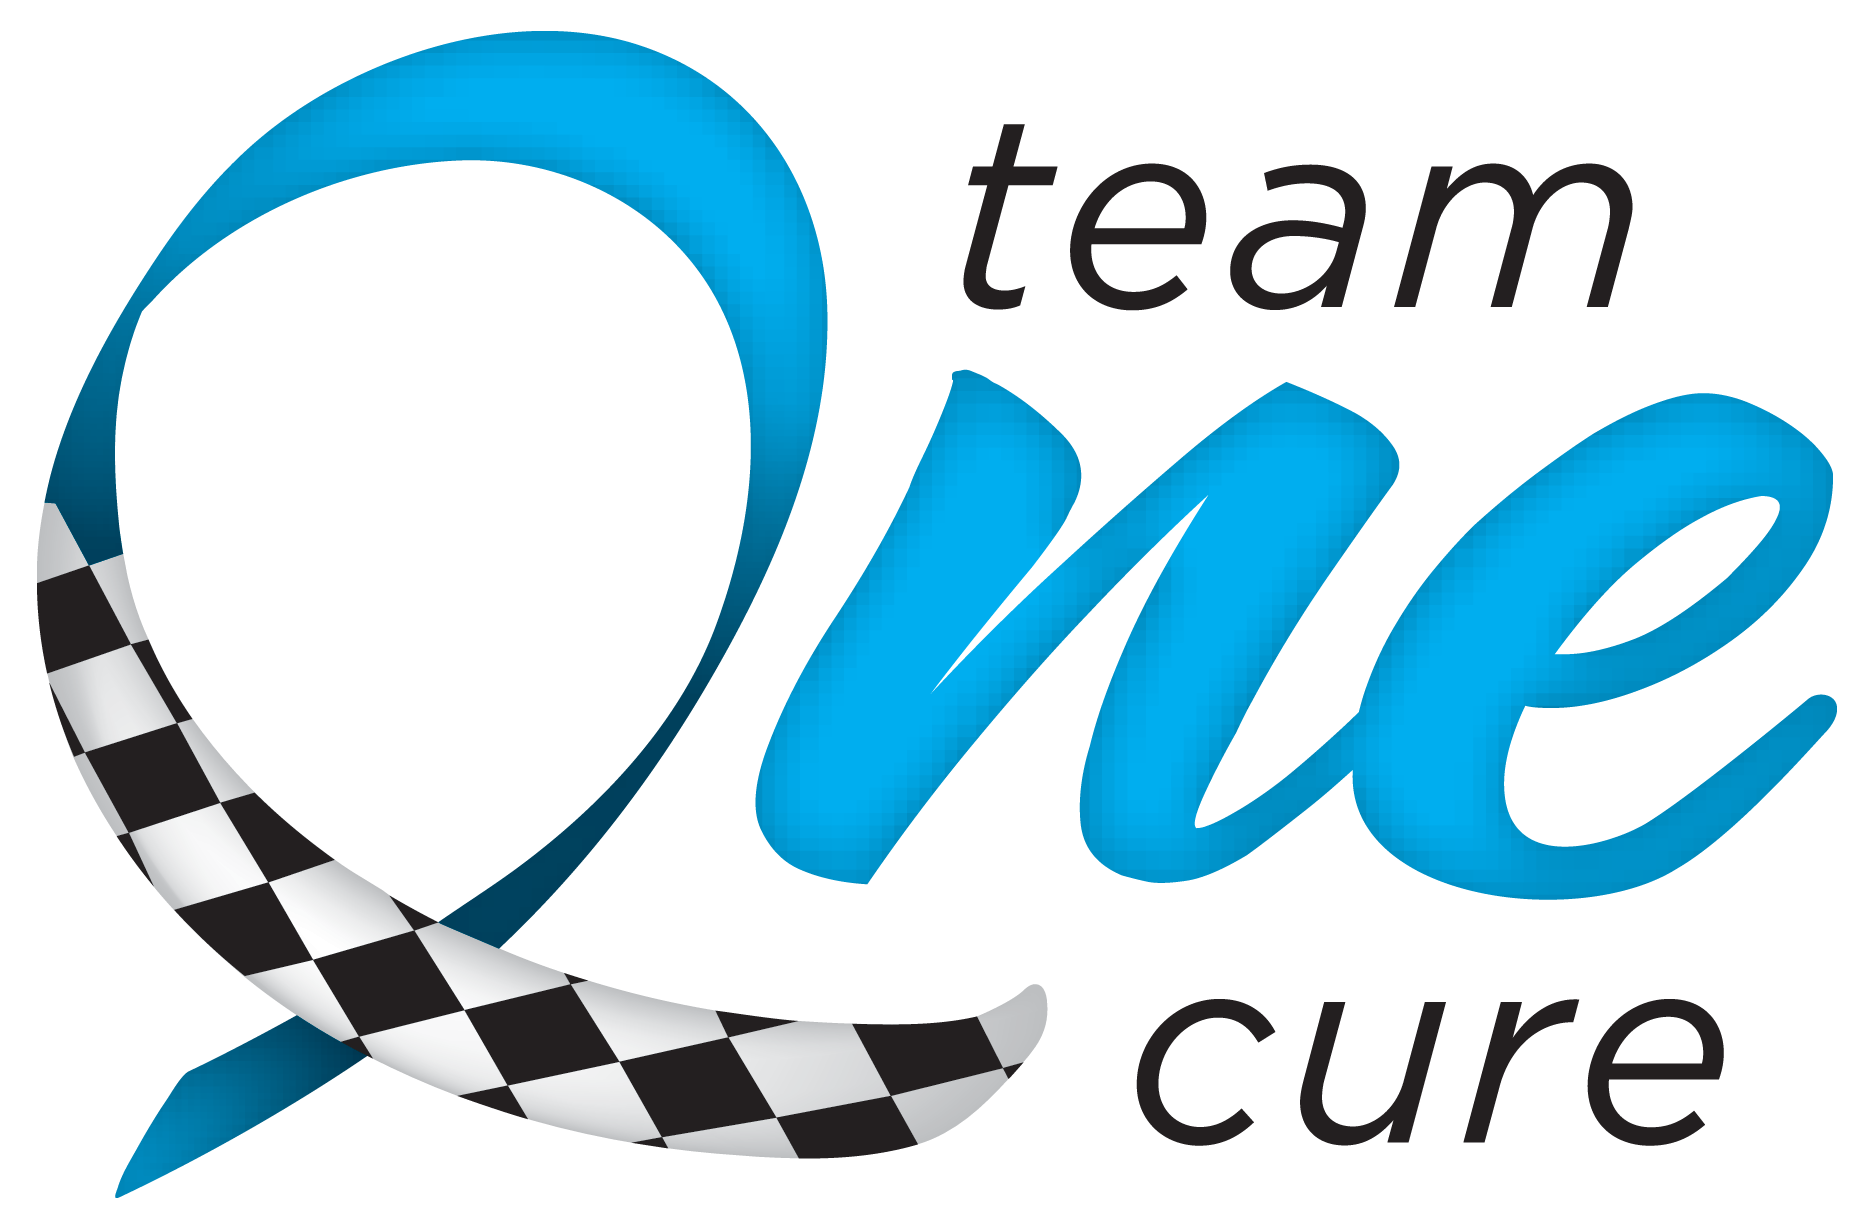 Team One Cure